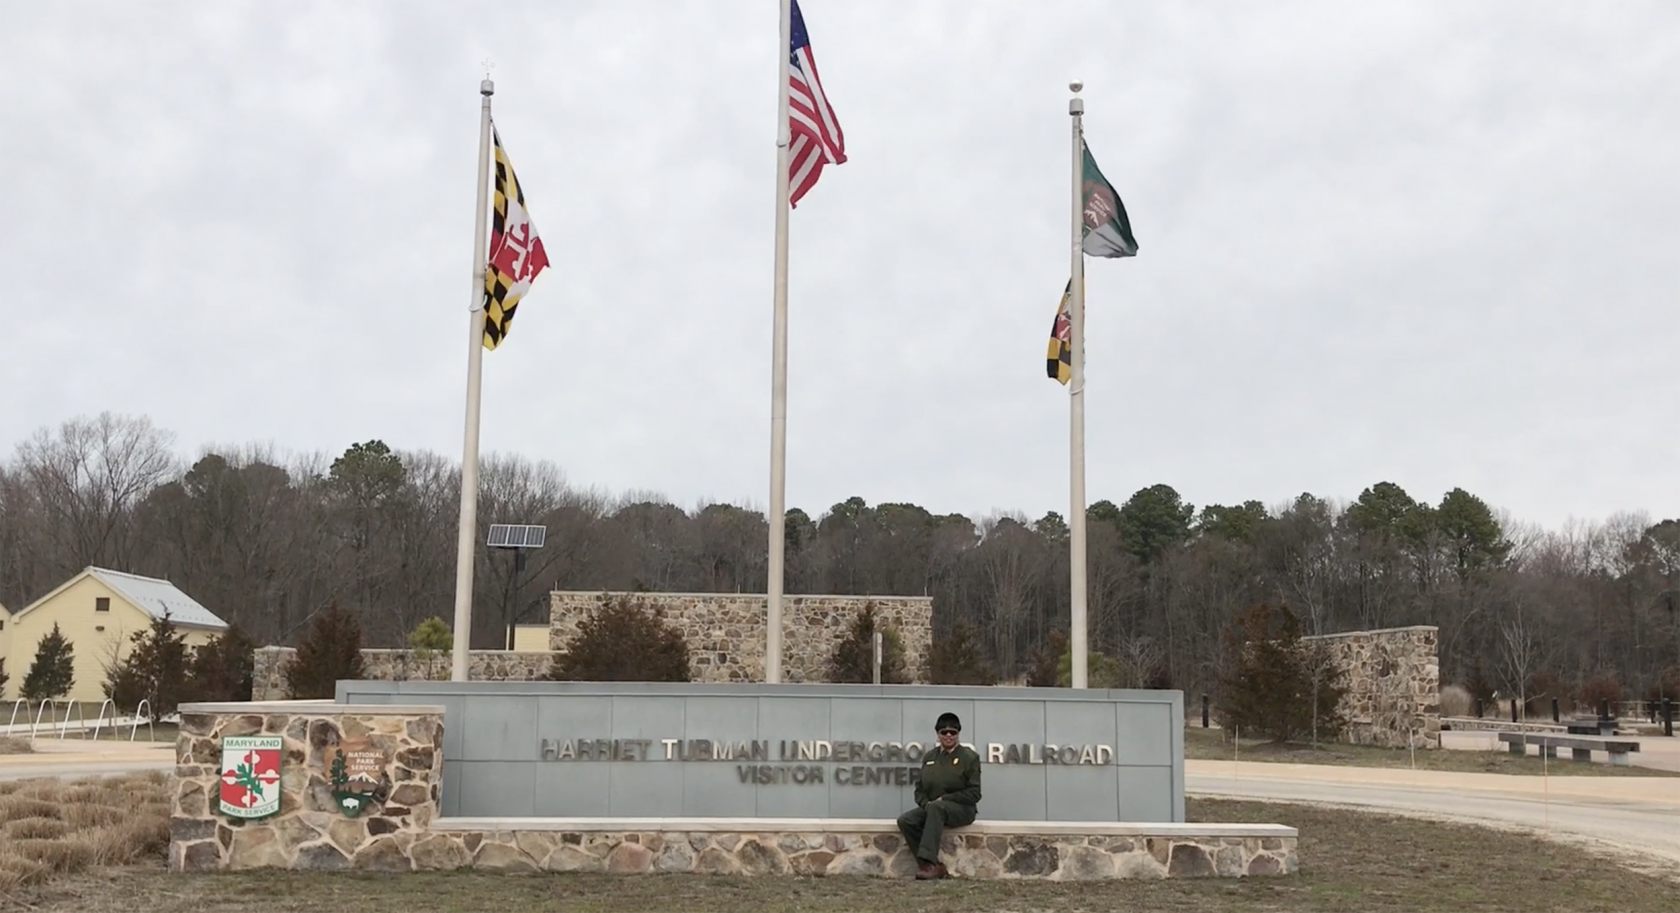 Deanna Mitchell sits outside on a stone sign for the Visitor Center at Harriet Tubman Underground Railroad National Historical Park. Three flags wave gently on flagpoles behind the sign.